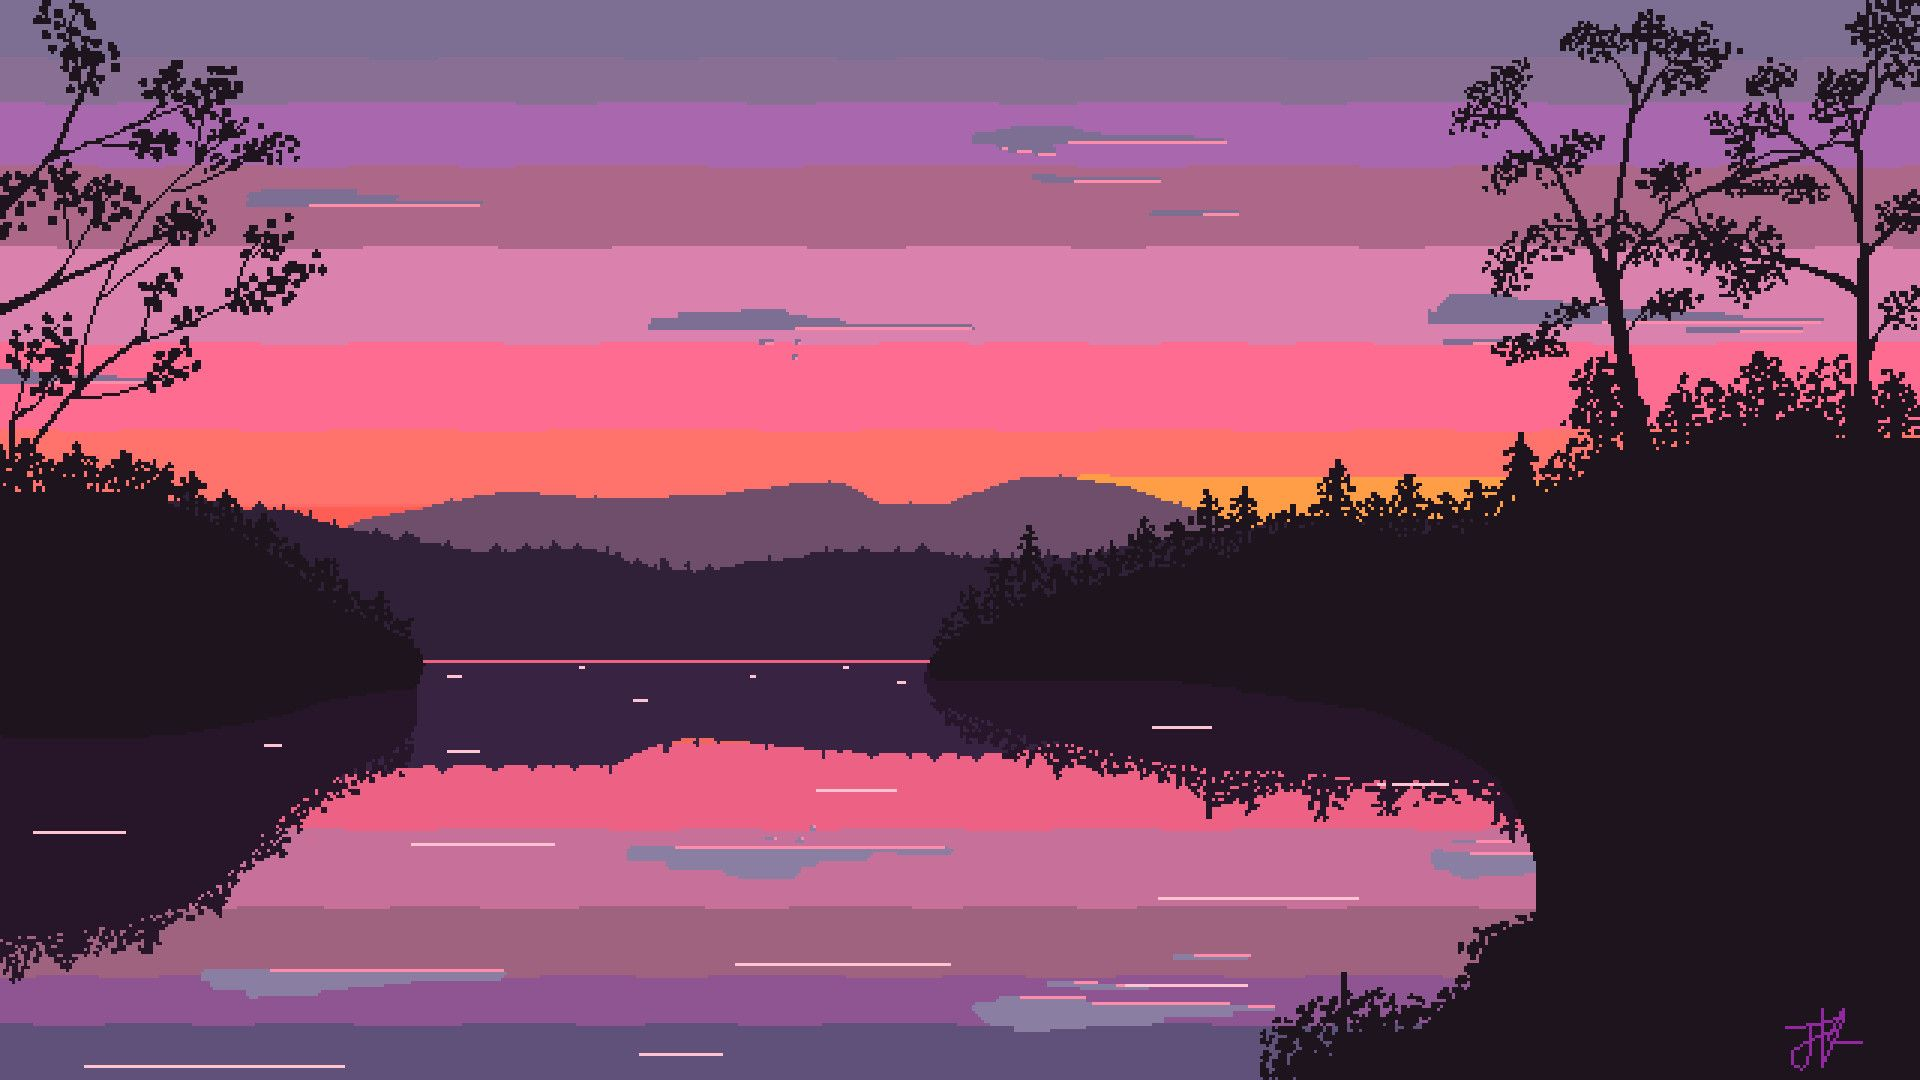 1920x1080 Morning Lake Pixel Art 1920x1080 Need Iphone 6s Plus Wallpaper Pixel Art Landscape Pixel Art Background Desktop Wallpaper Art